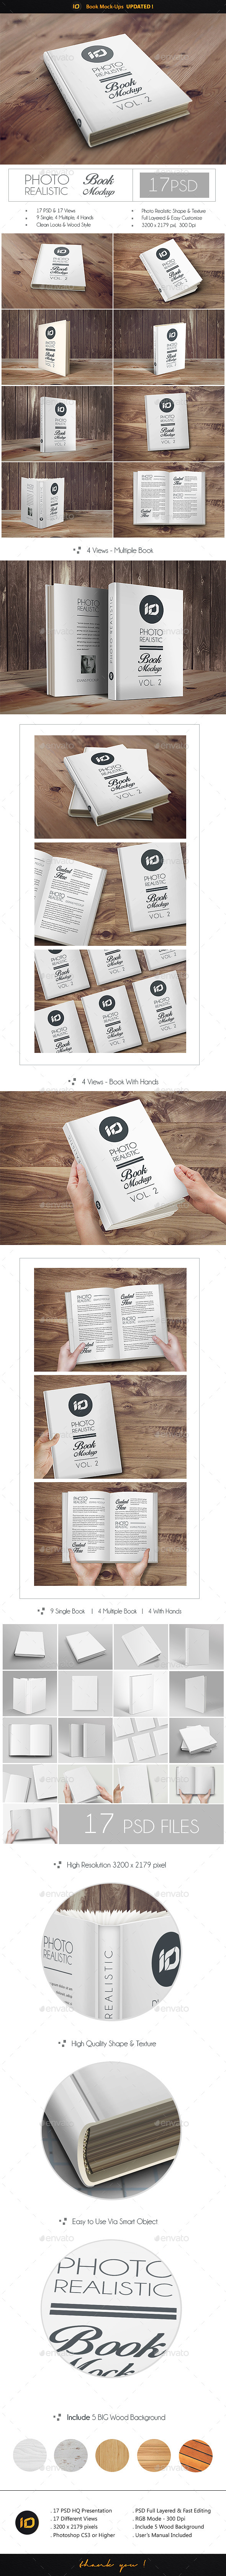 ID Book Mock-Up Photorealistic - Books Print